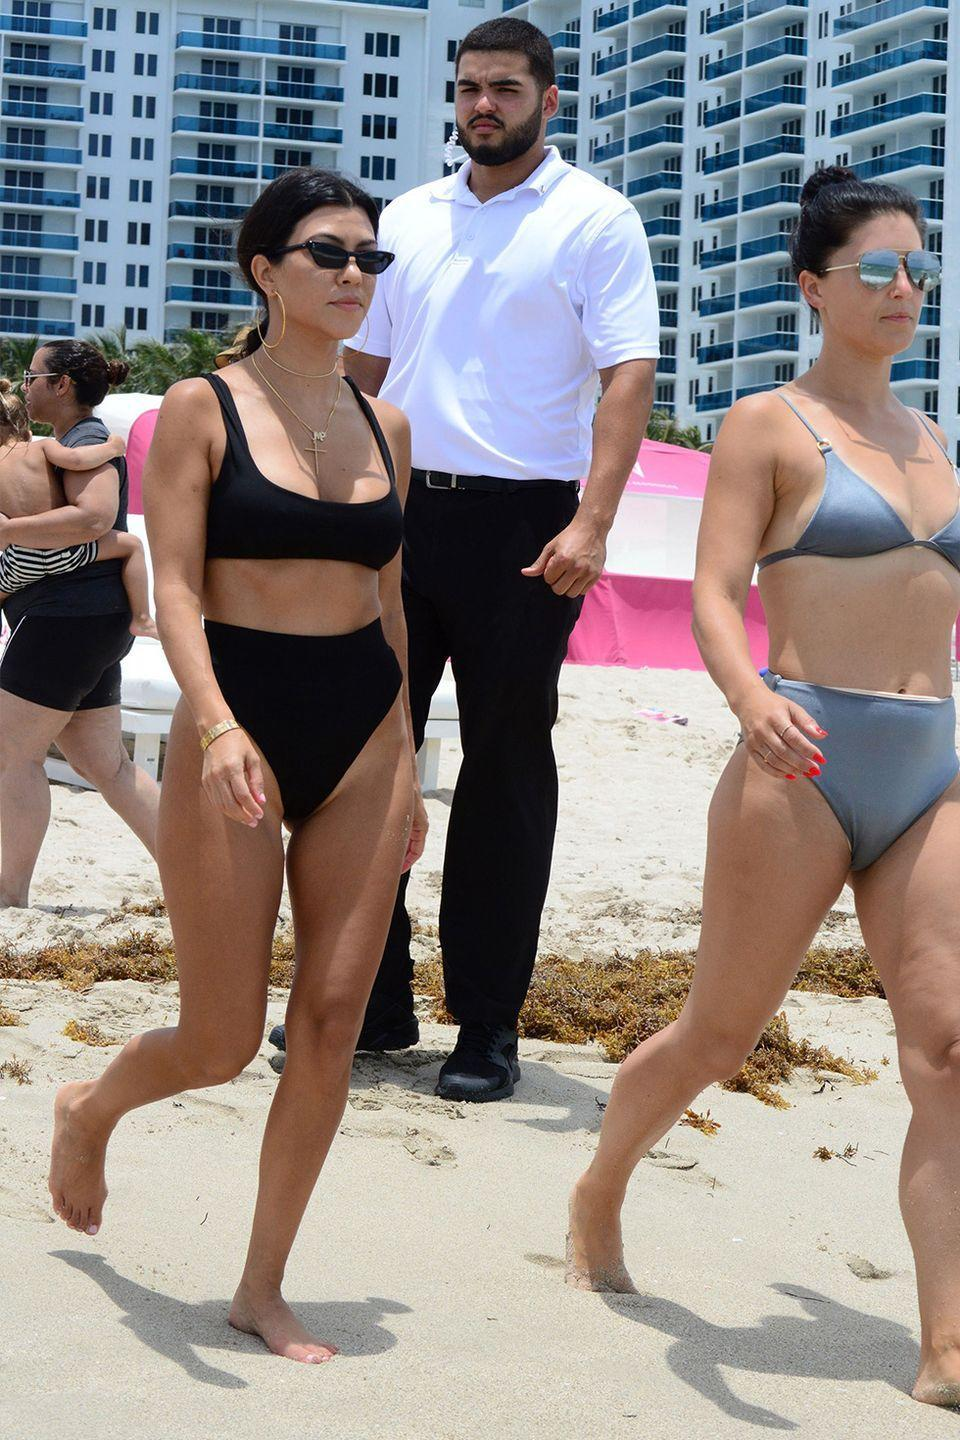 "<p>Kourtney loves to eat fresh avocado pudding in the a.m.. ""It only takes a few minutes to make and it provides healthy fats to give me energy before a workout,"" Kourtney said on her <a href=""https://www.kourtneykardashian.com/kourt/1164-kourtney-kardashian-meal-plan"" rel=""nofollow noopener"" target=""_blank"" data-ylk=""slk:website"" class=""link rapid-noclick-resp"">website</a>.</p><p>ICYMI: Avos are <a href=""https://www.womenshealthmag.com/food/a19495380/how-many-calories-in-an-avocado/"" rel=""nofollow noopener"" target=""_blank"" data-ylk=""slk:pretty damn good"" class=""link rapid-noclick-resp"">pretty damn good</a> for you. But keep in mind, an entire avocado clocks in at 322 calories—so maybe stick to half.</p>"